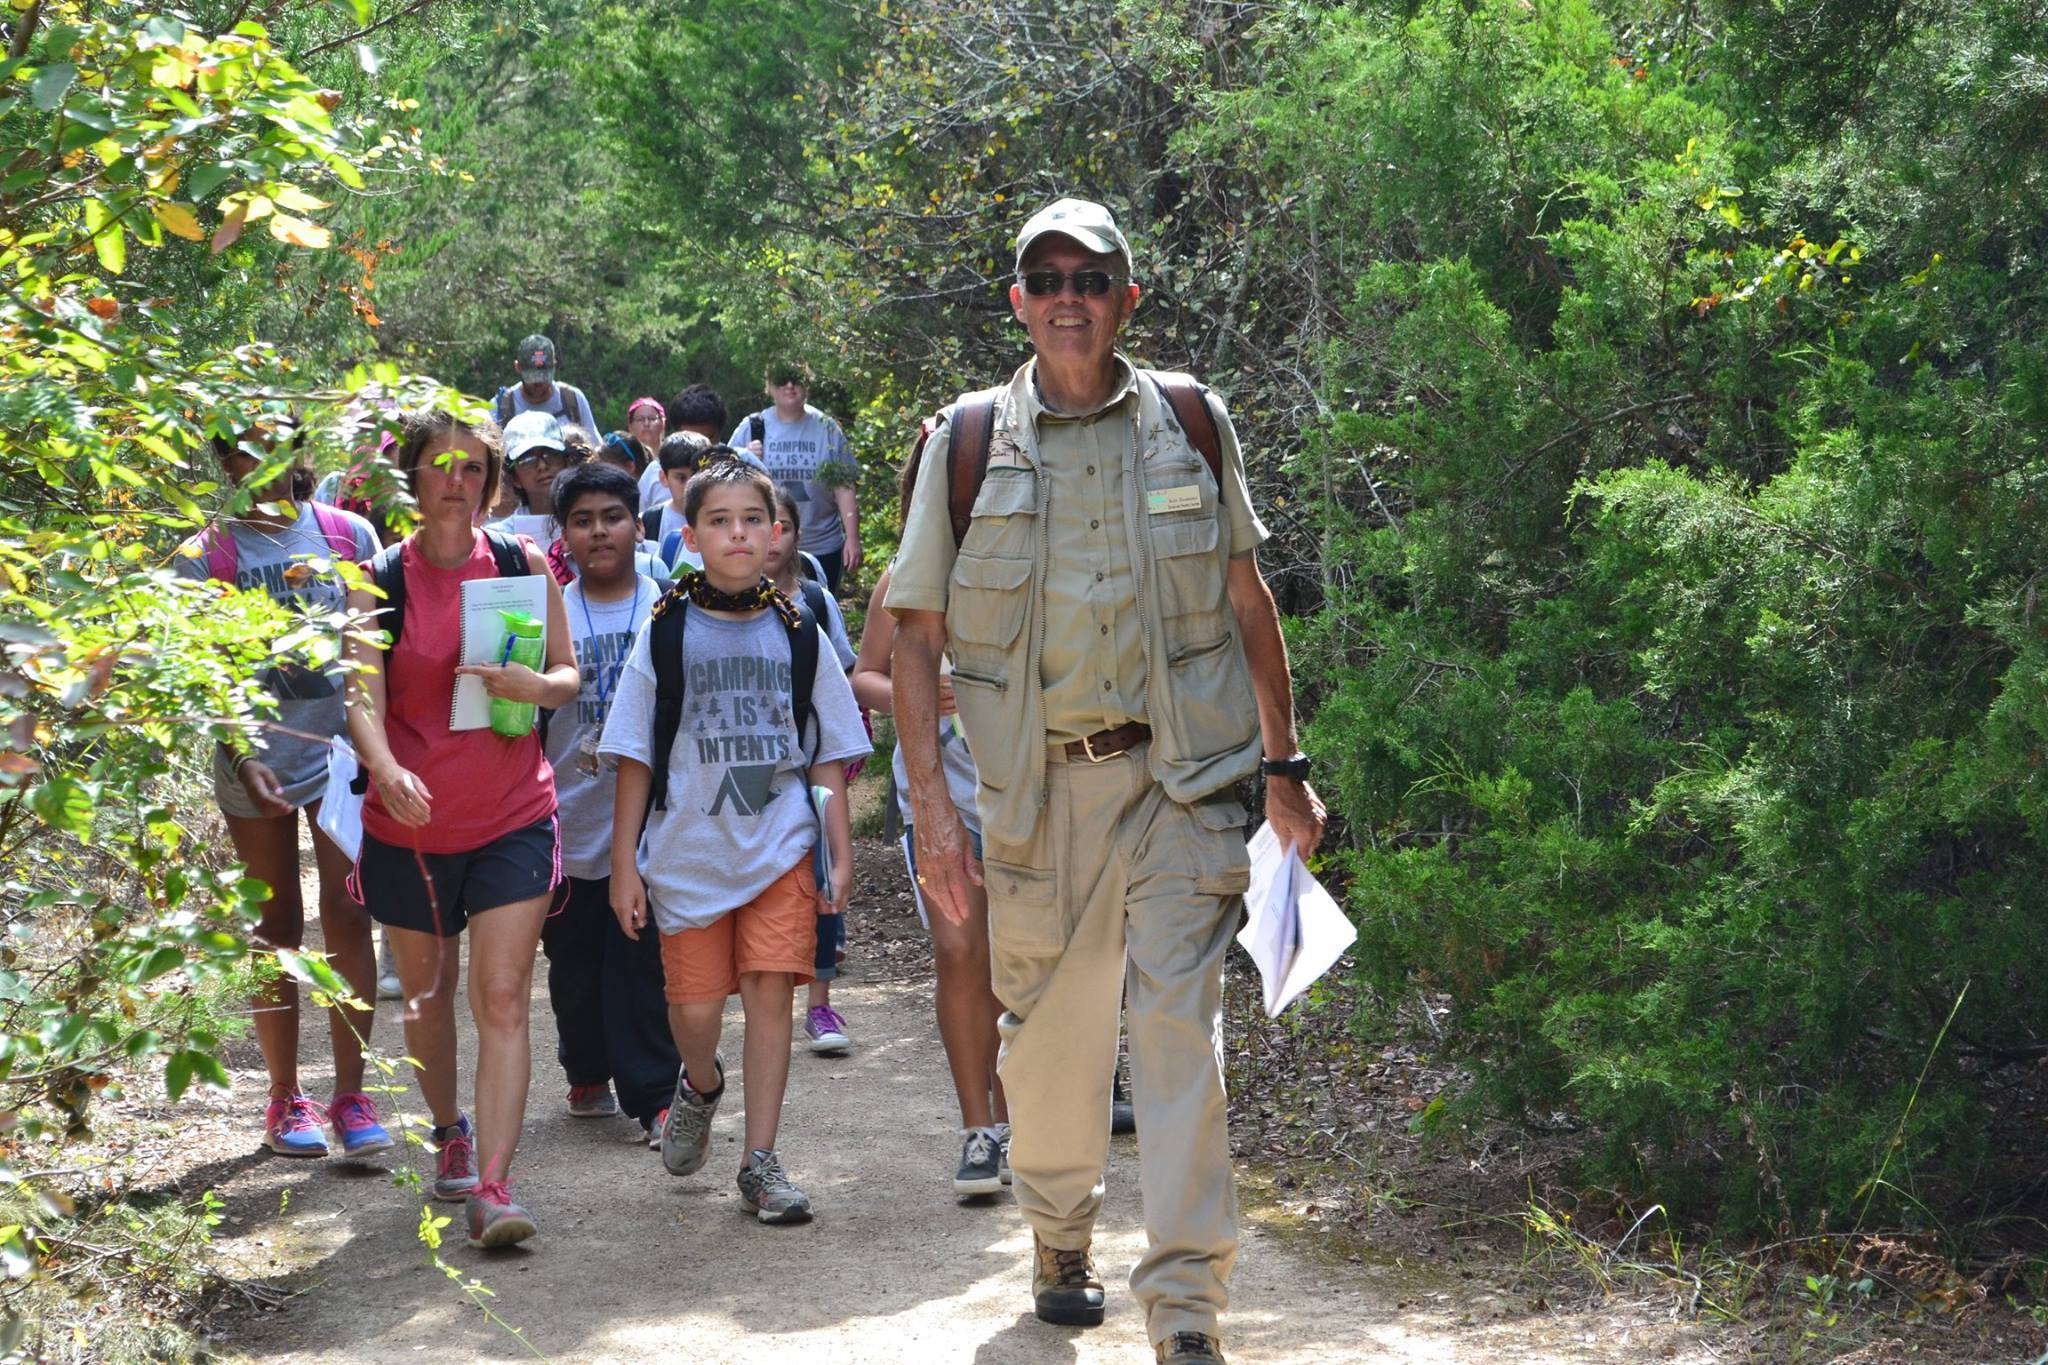 U201cThe Outdoor Education Program At Collin County Adventure Camp Has A  Tremendous Impact On Our 5th Grade Students And Staff. During Our Stay,  Students Build ...